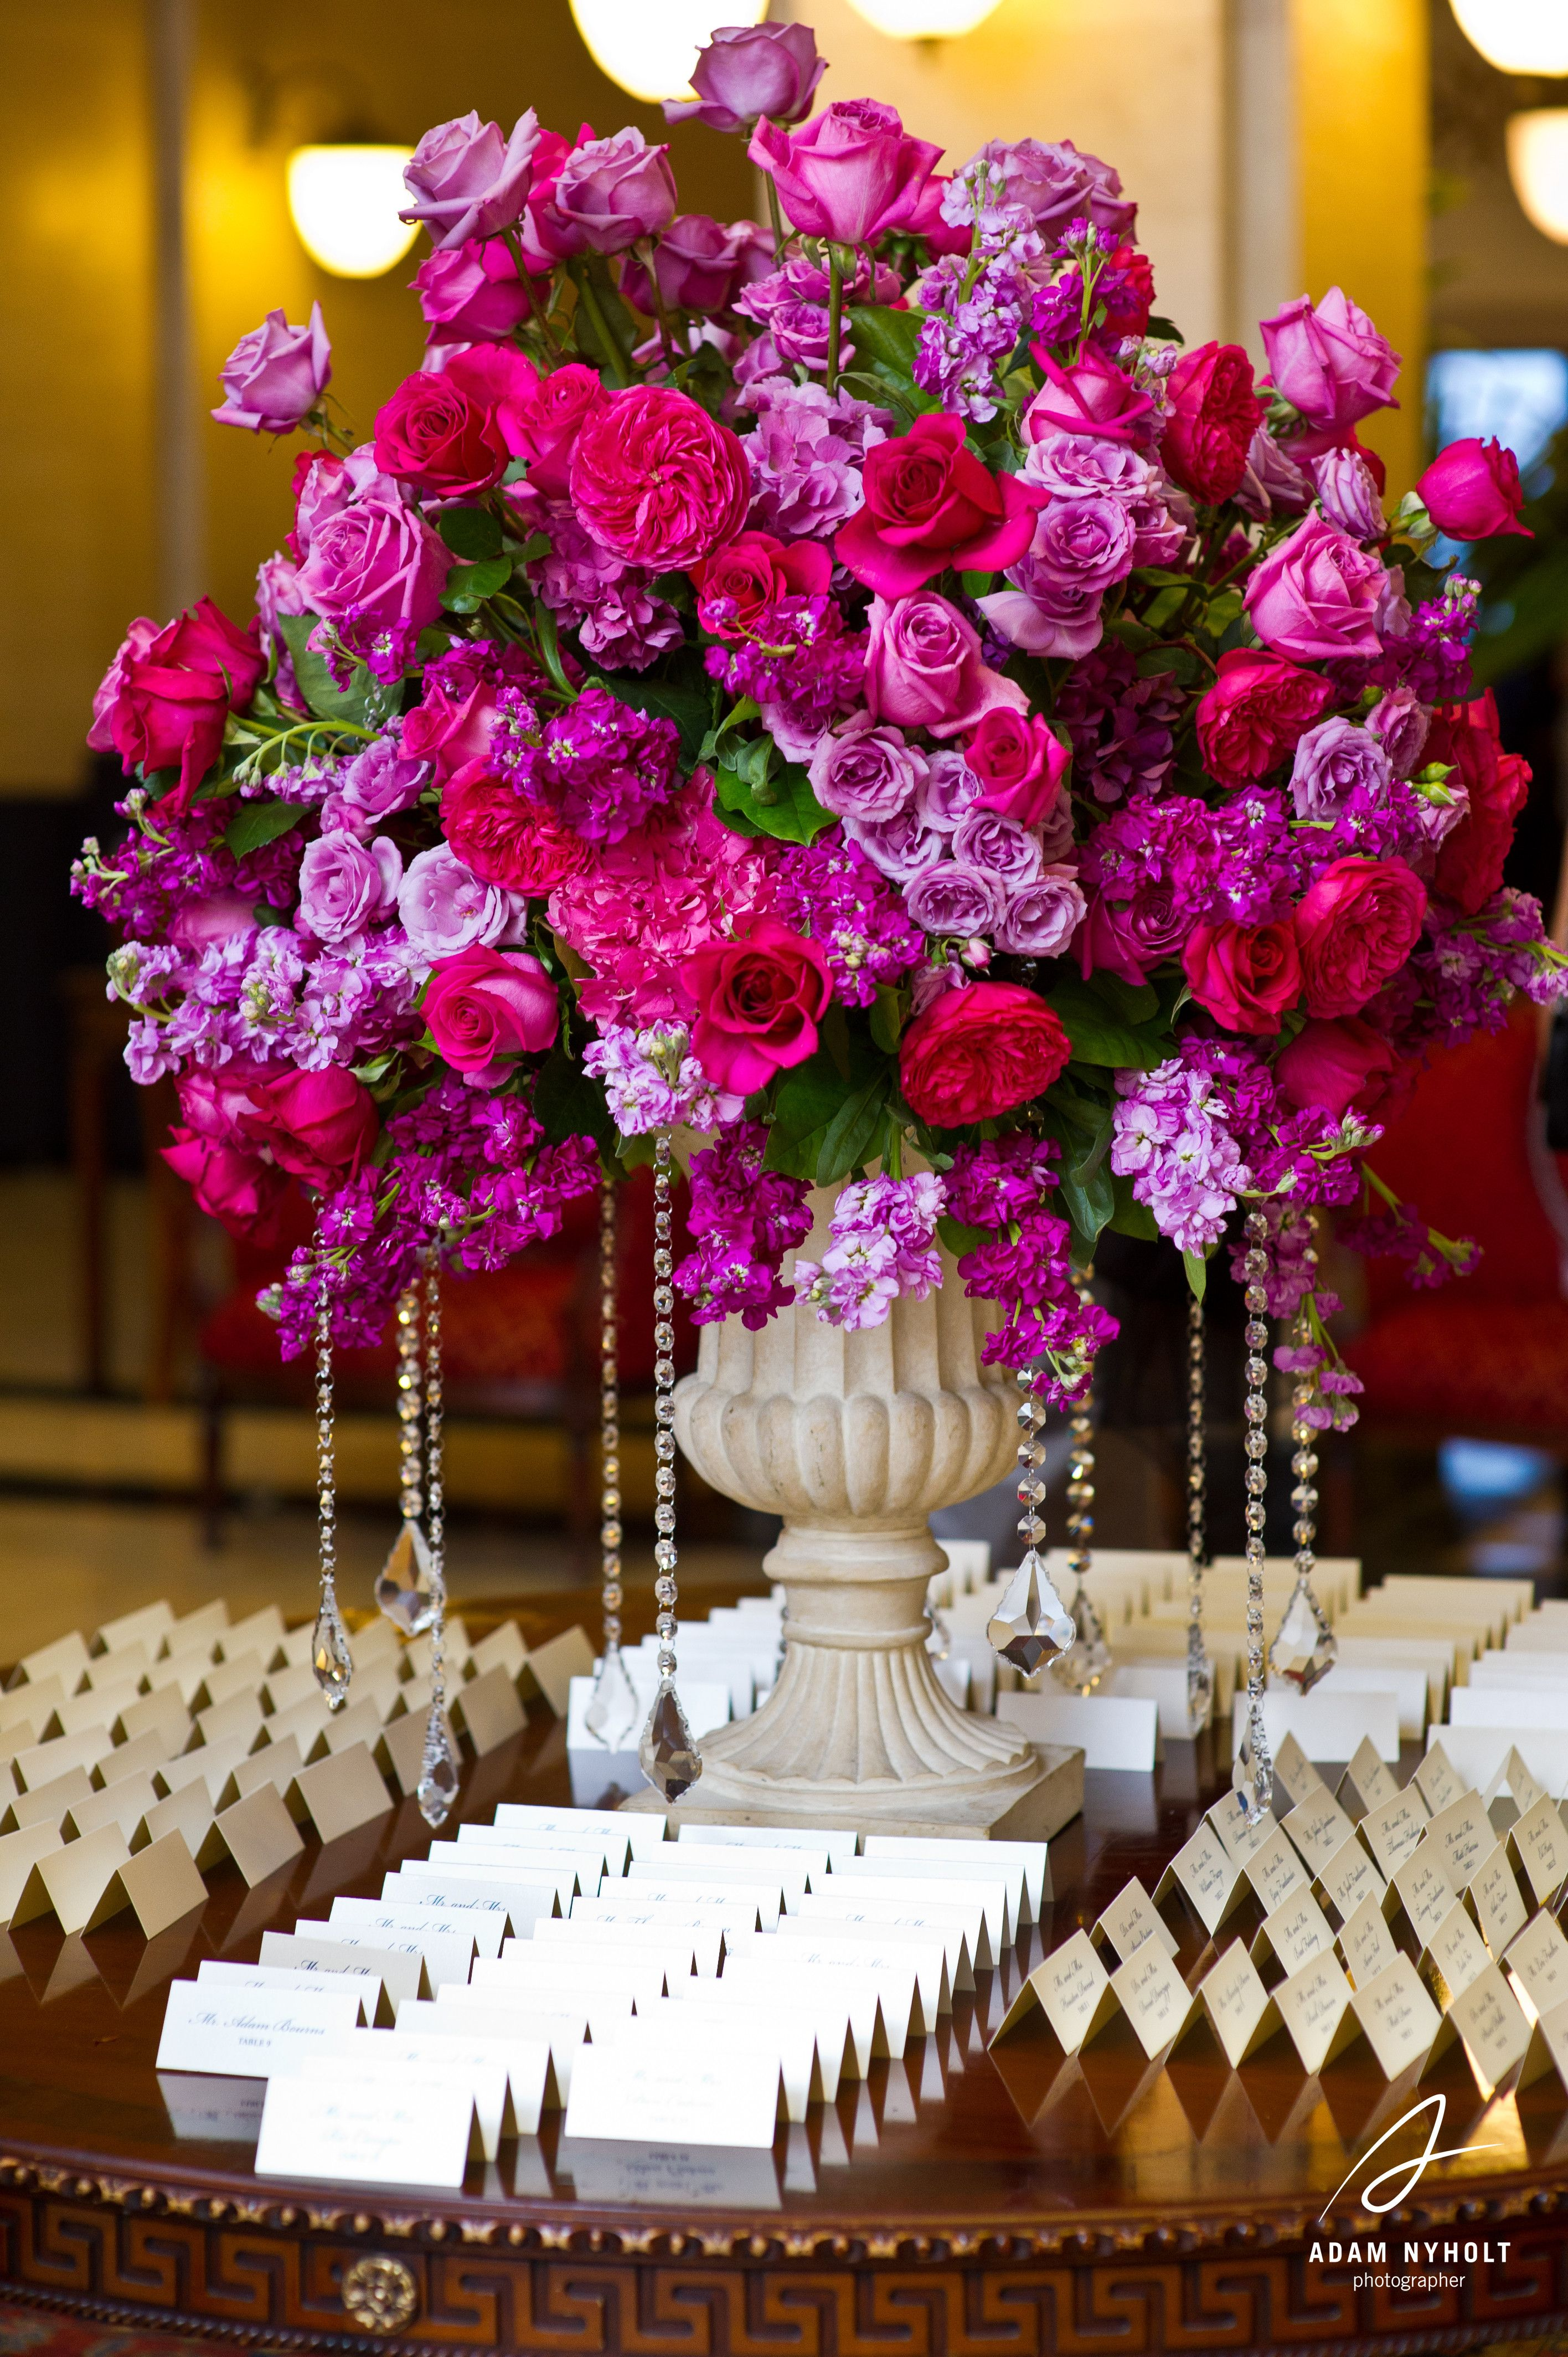 pink and purple centerpiece flowers photography by adam nyholt rh pinterest com Pink and Purple Wedding Centerpieces Pink and White Floral Centerpieces